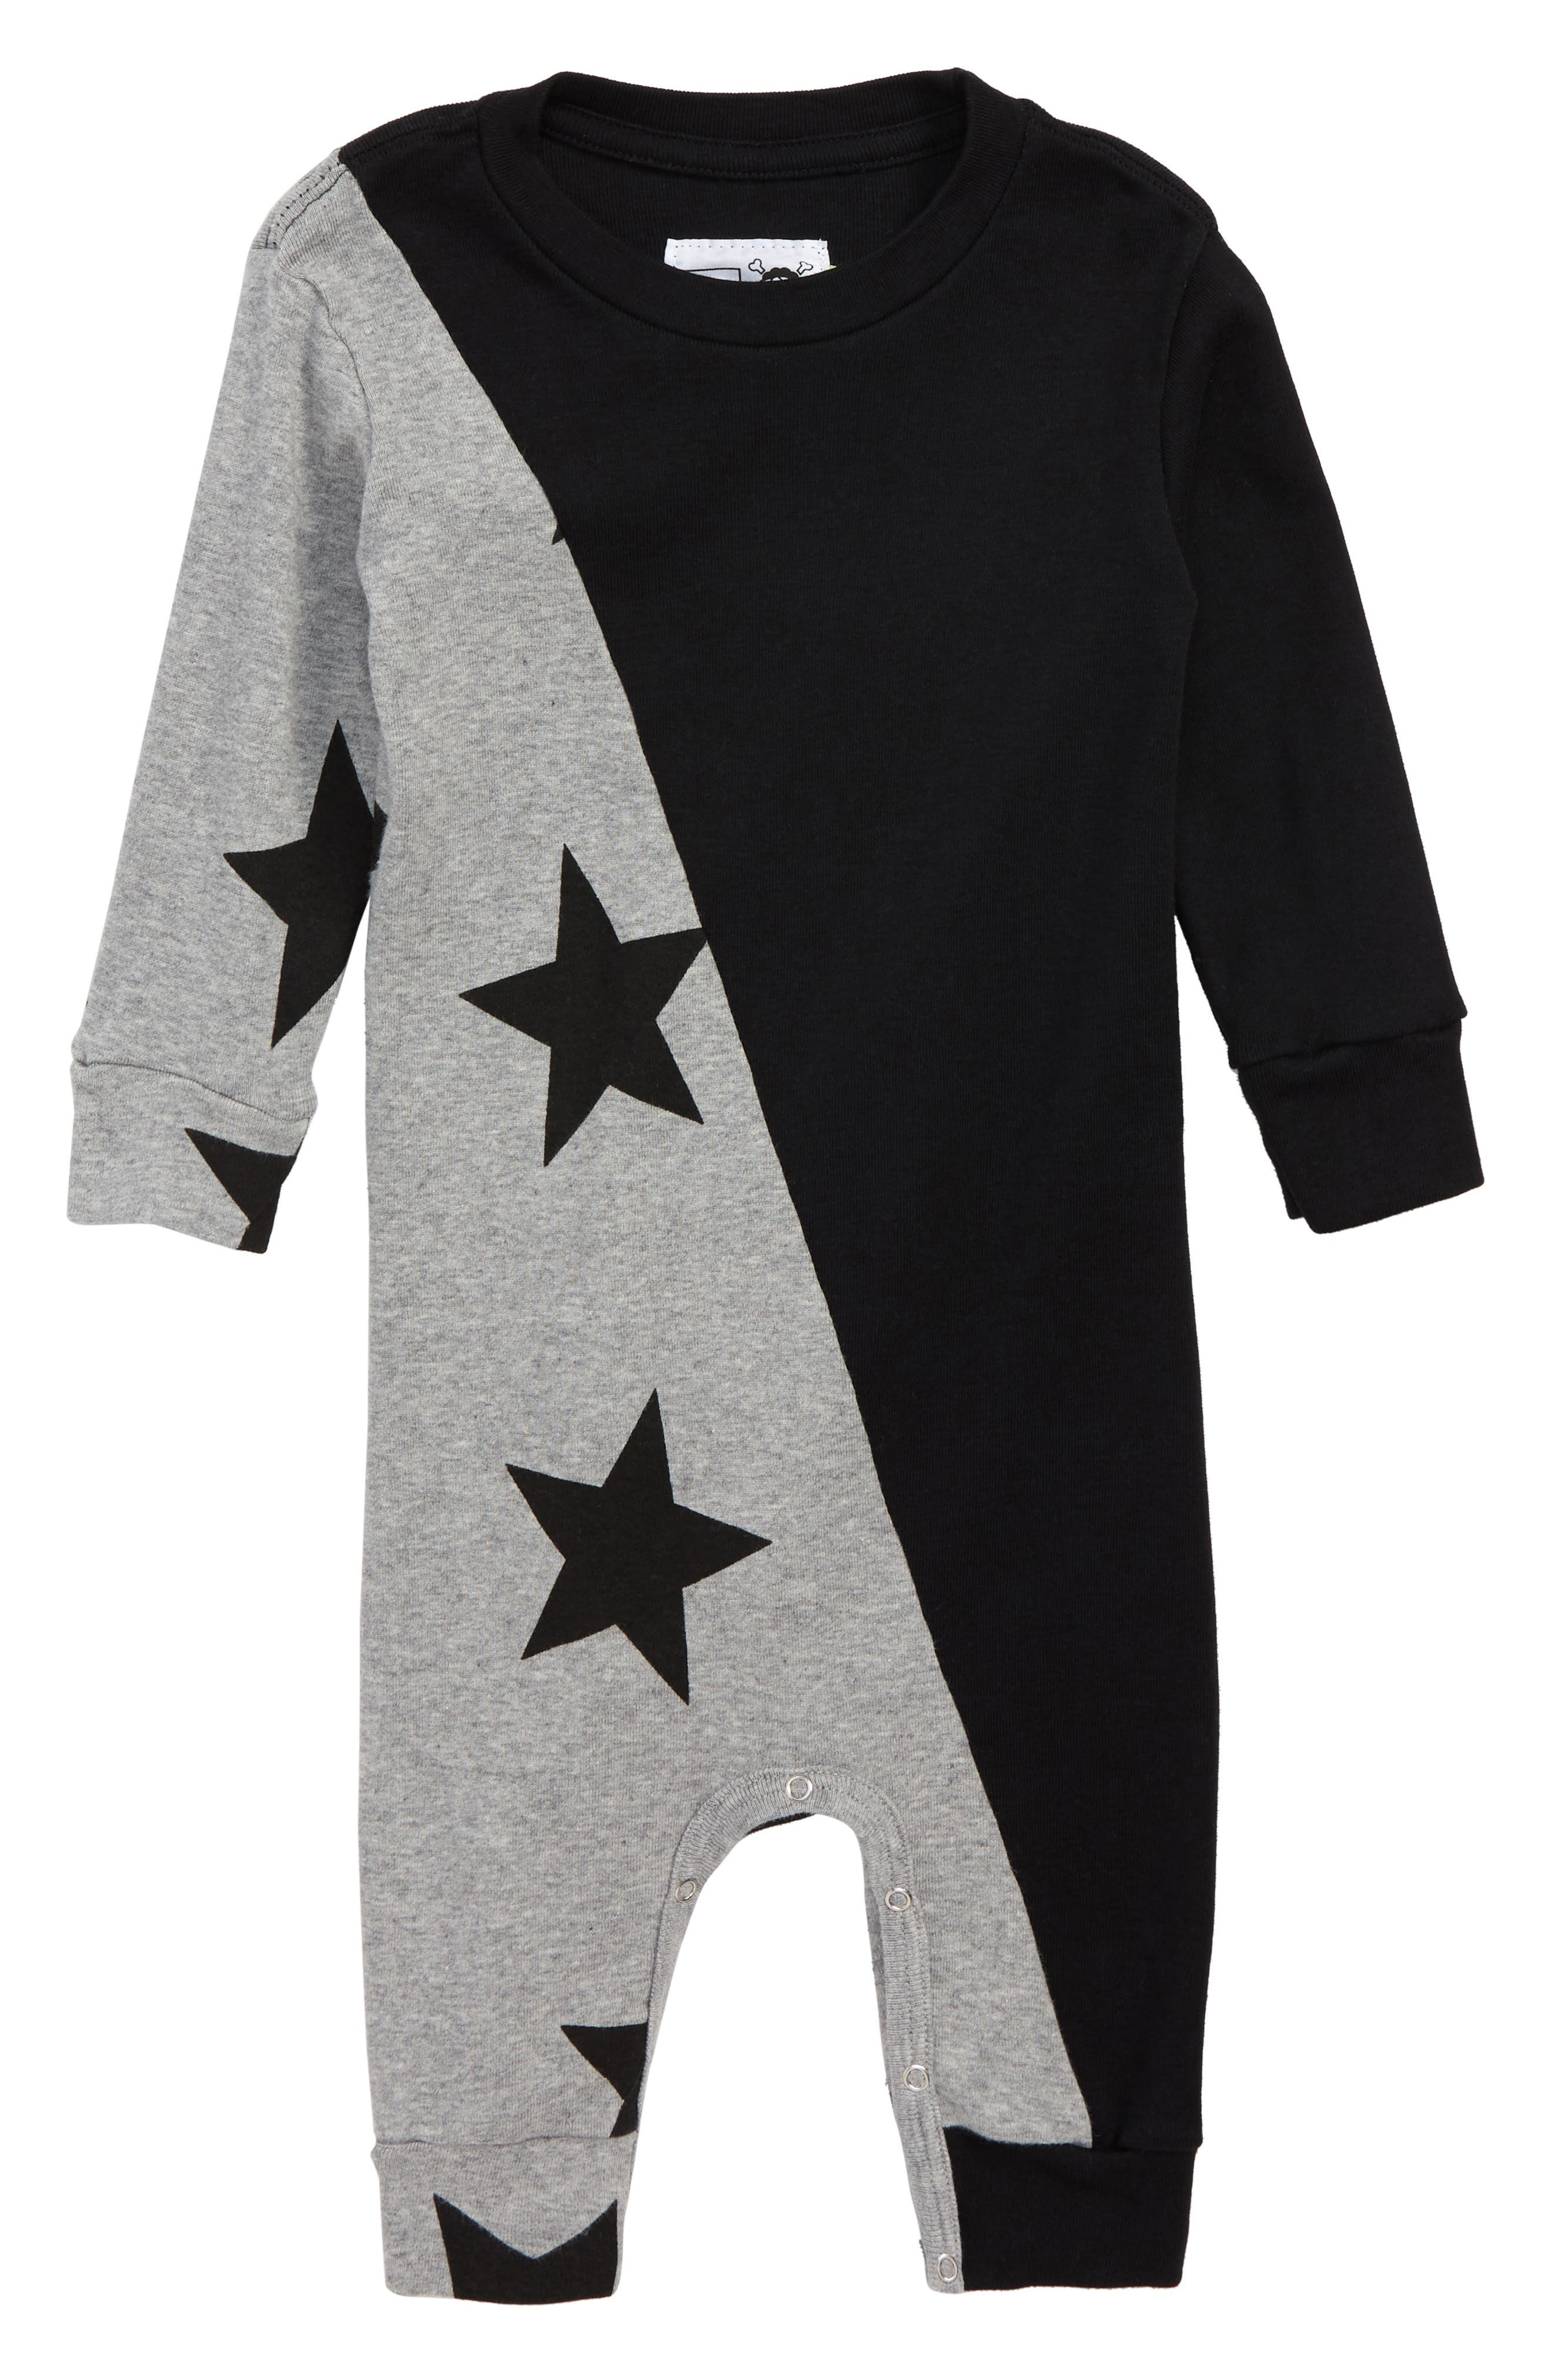 1/2 and 1/2 Star Romper,                         Main,                         color, BLACK/ HEATHER GREY